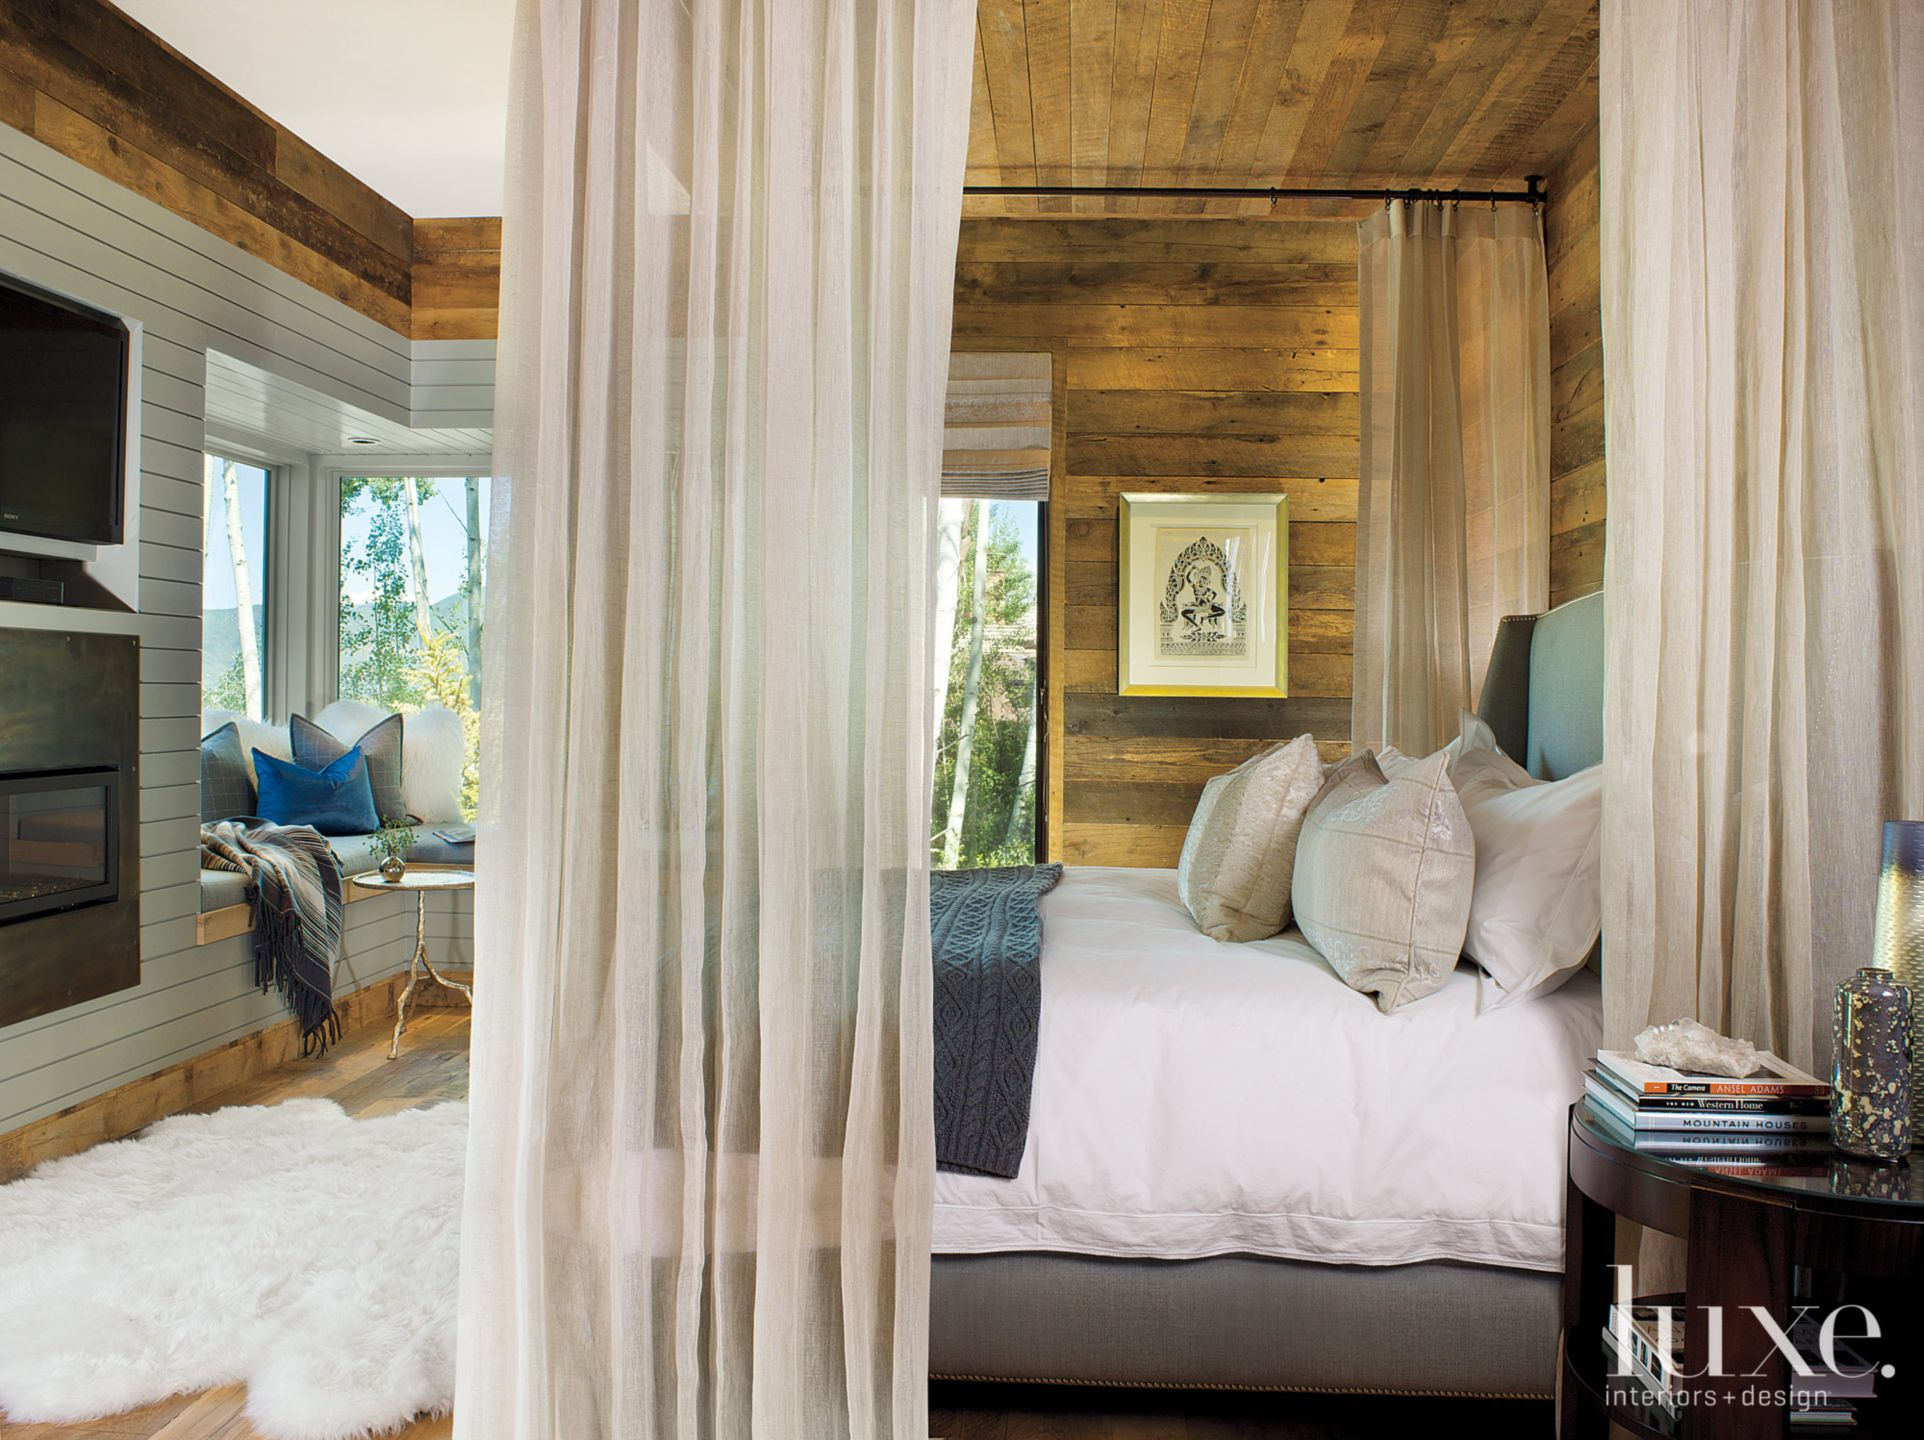 Mountain Neutral Bedroom with Rustic Wood-Paneled Walls